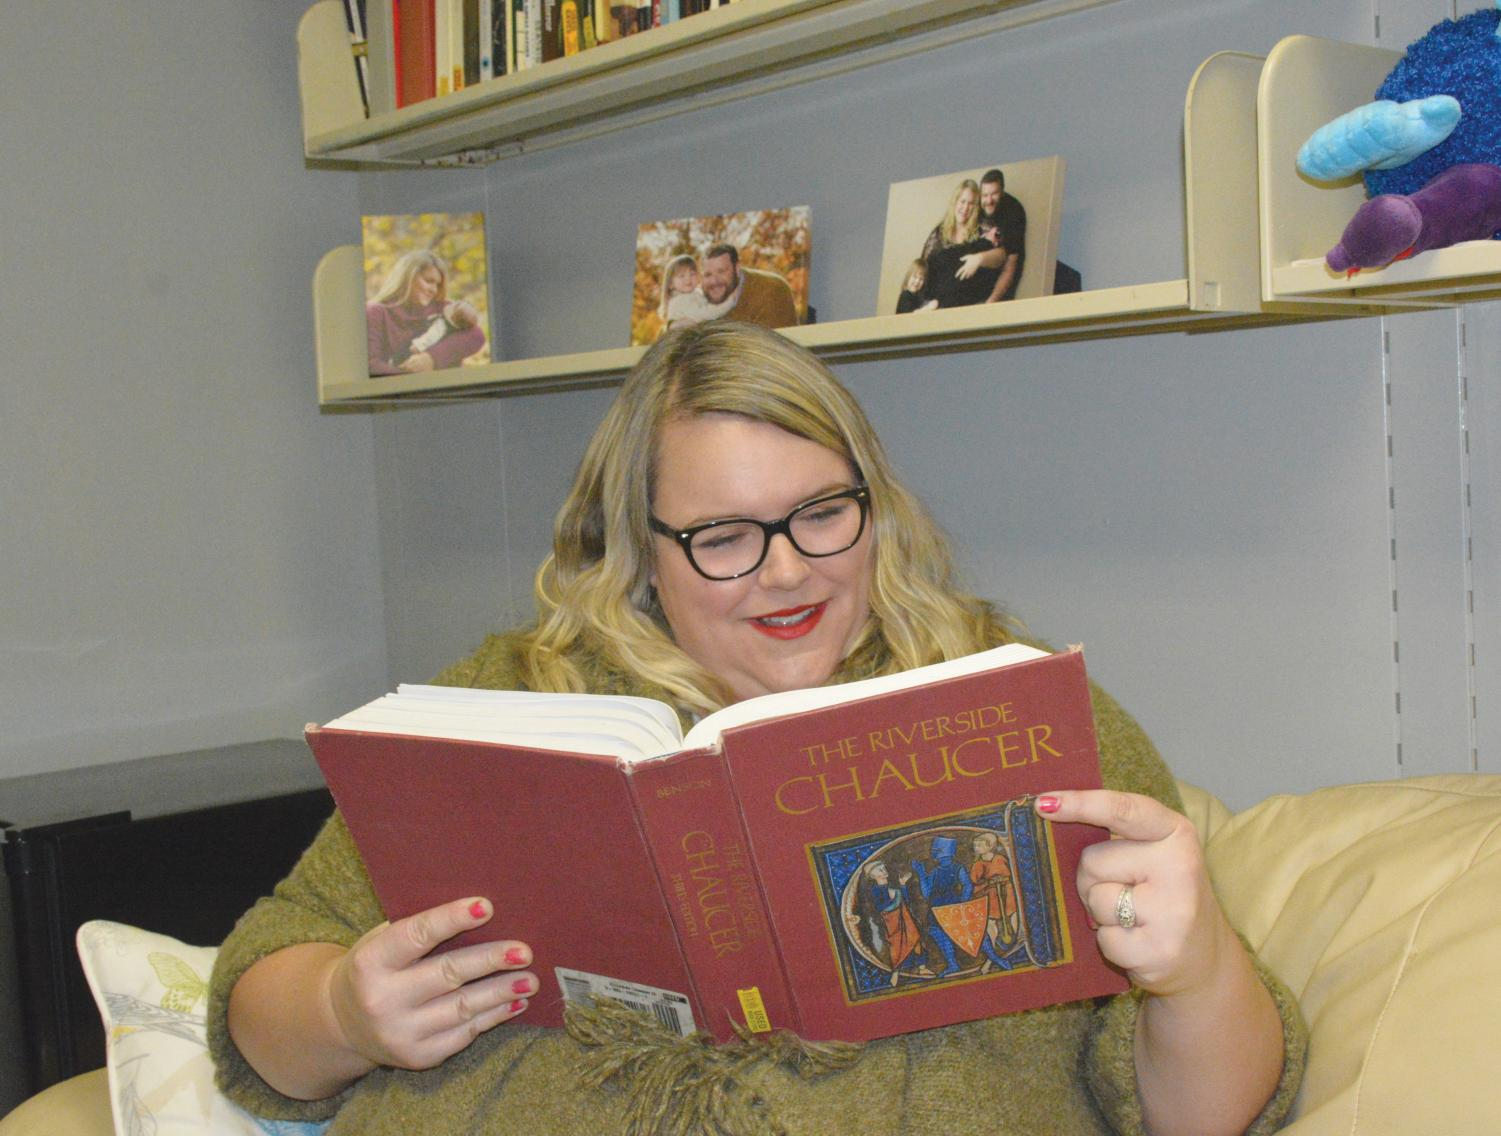 Assistant professor of English Megan Woosley-Goodman, who enjoys old English, sits and read her favorite book.